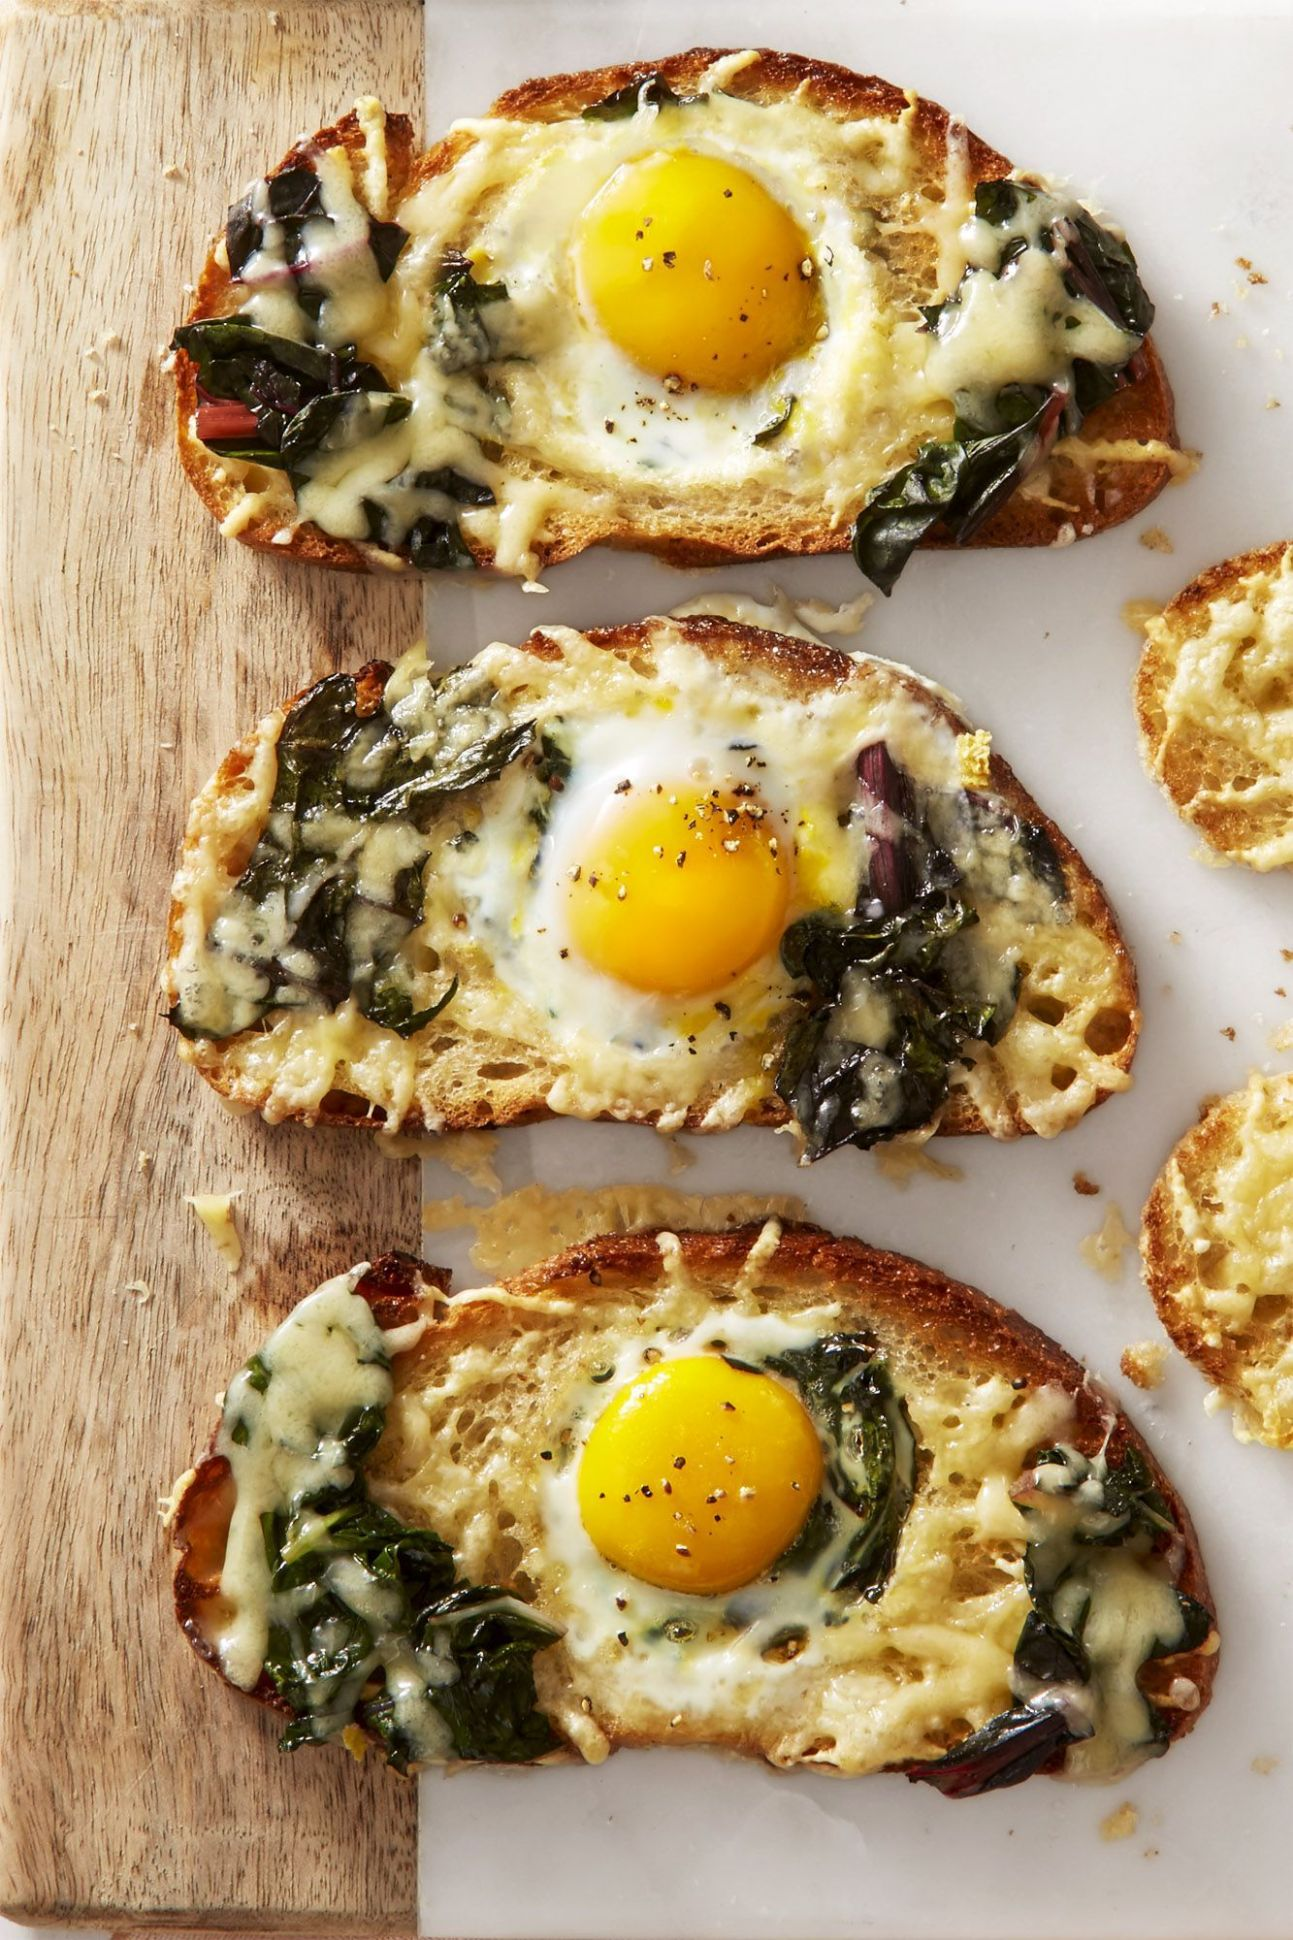 12+ Easy Egg Recipes - Ways to Cook Eggs for Breakfast